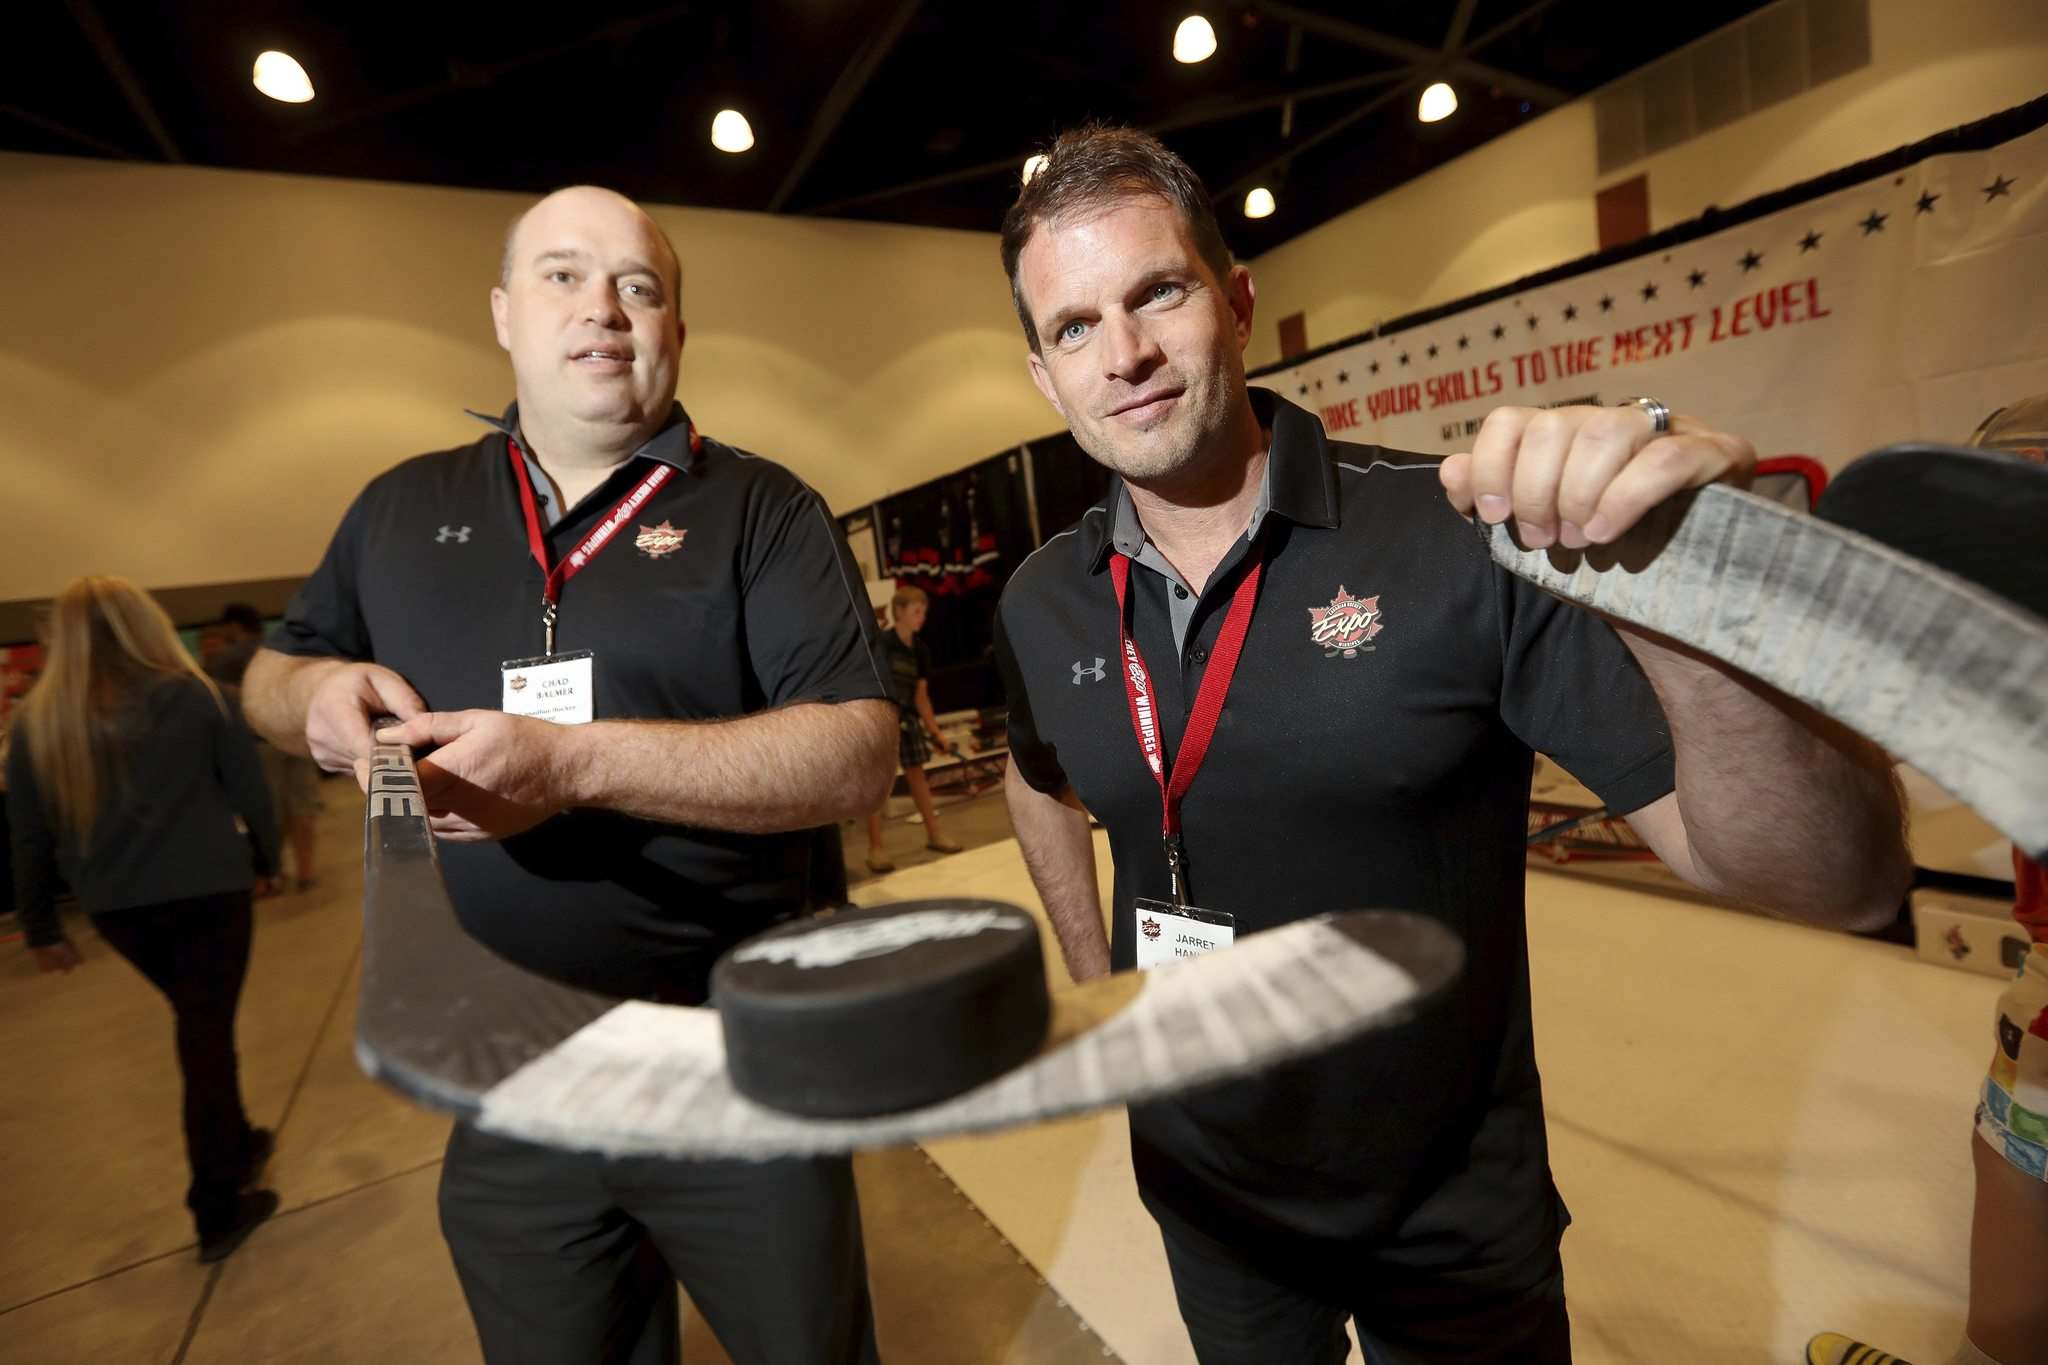 TREVOR HAGAN / WINNIPEG FREE PRESS</p><p>Chad Balmer and Jarret Hannah, organizers of the Canadian Hockey Expo at the Convention Centre, Saturday, June 11, 2016.</p>